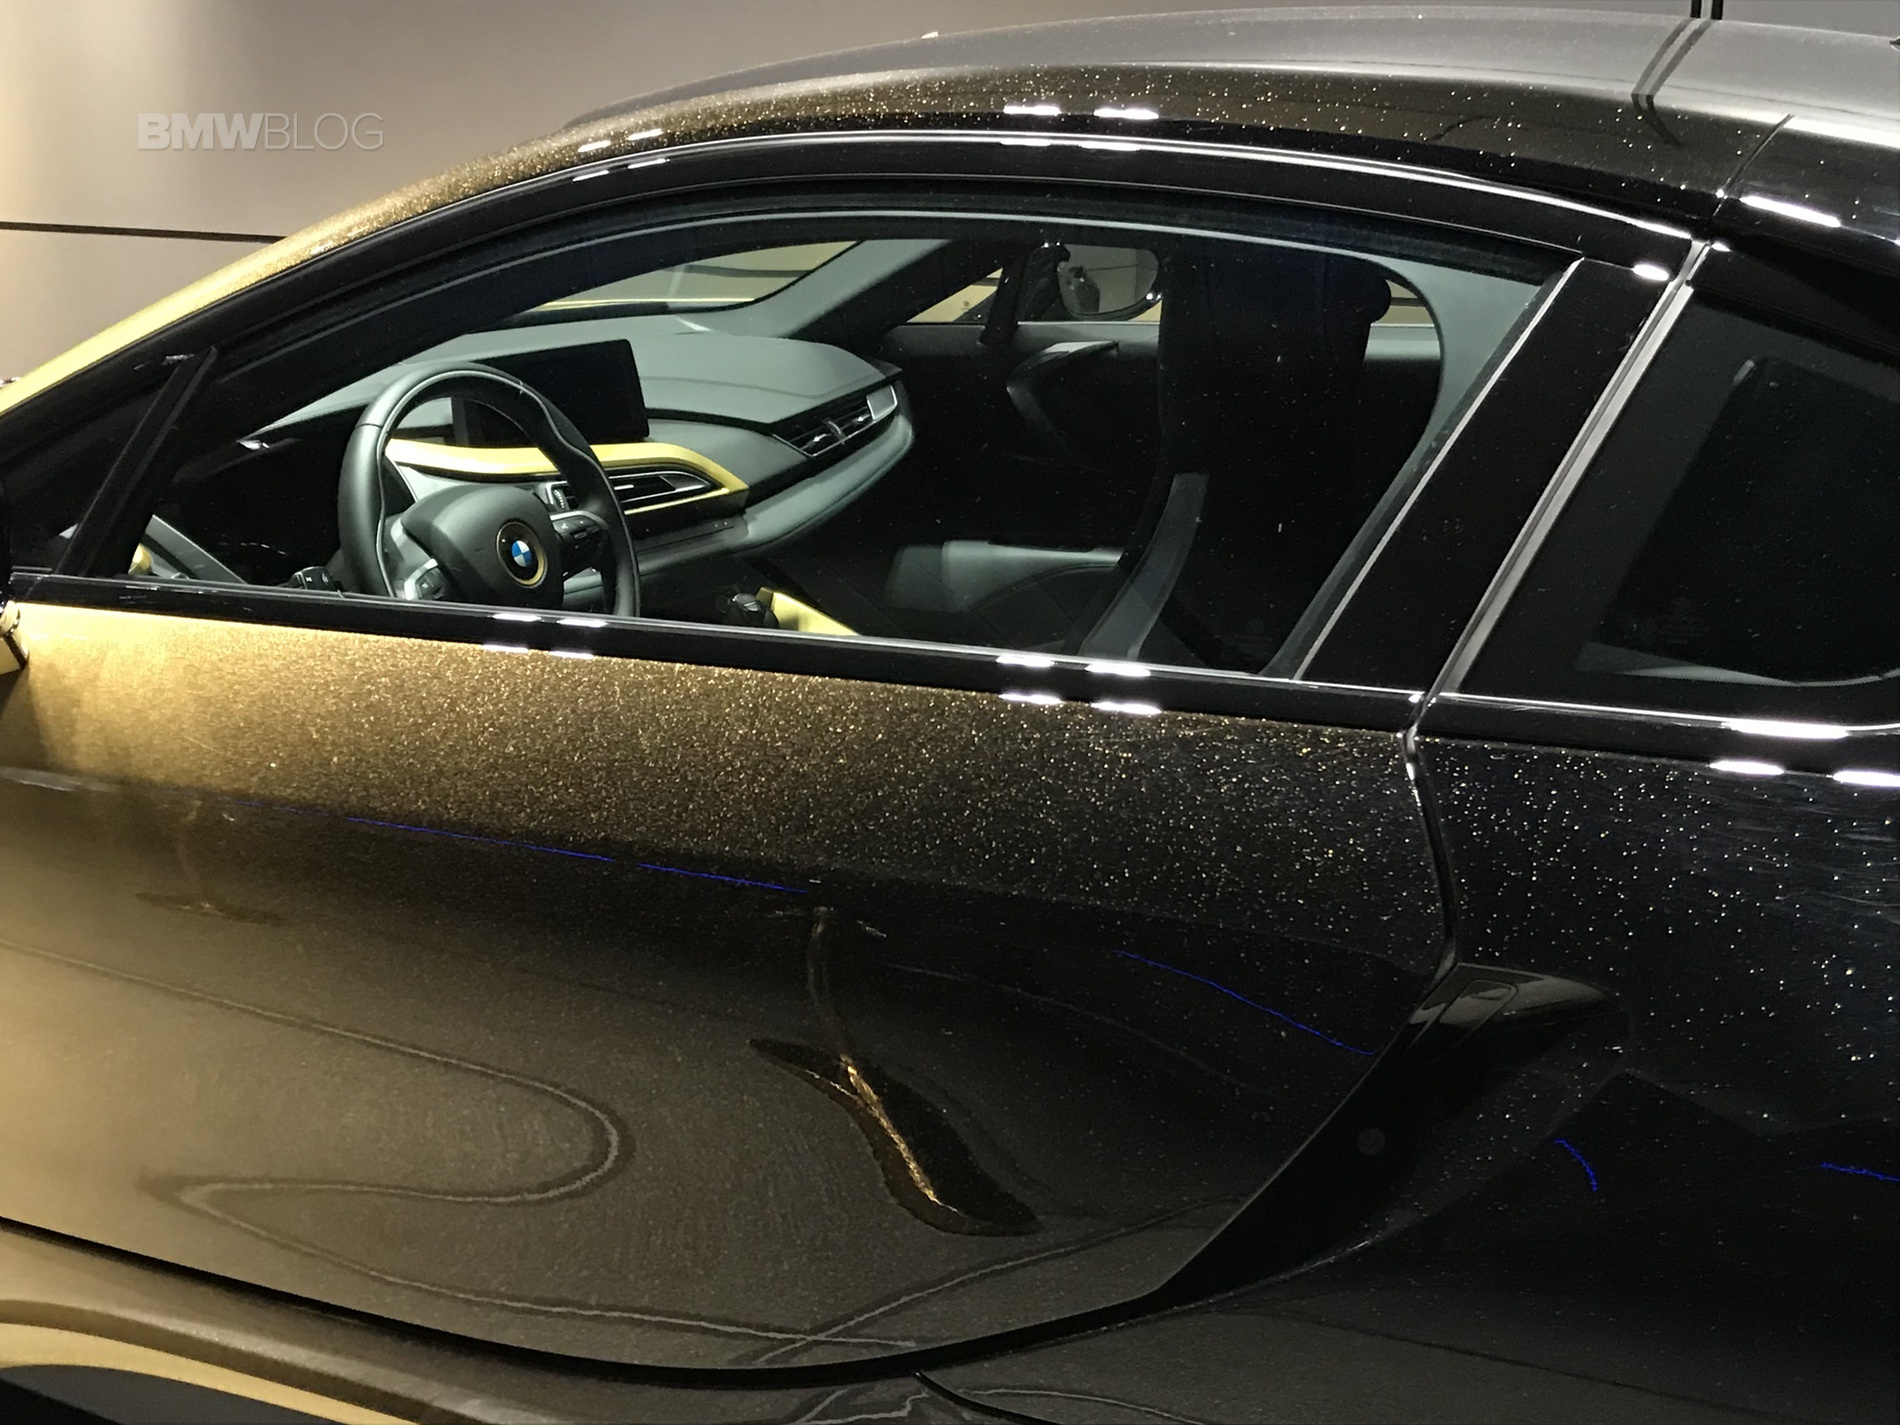 Bmw I3s And I8 Starlight Edition Displayed At Bmw Welt